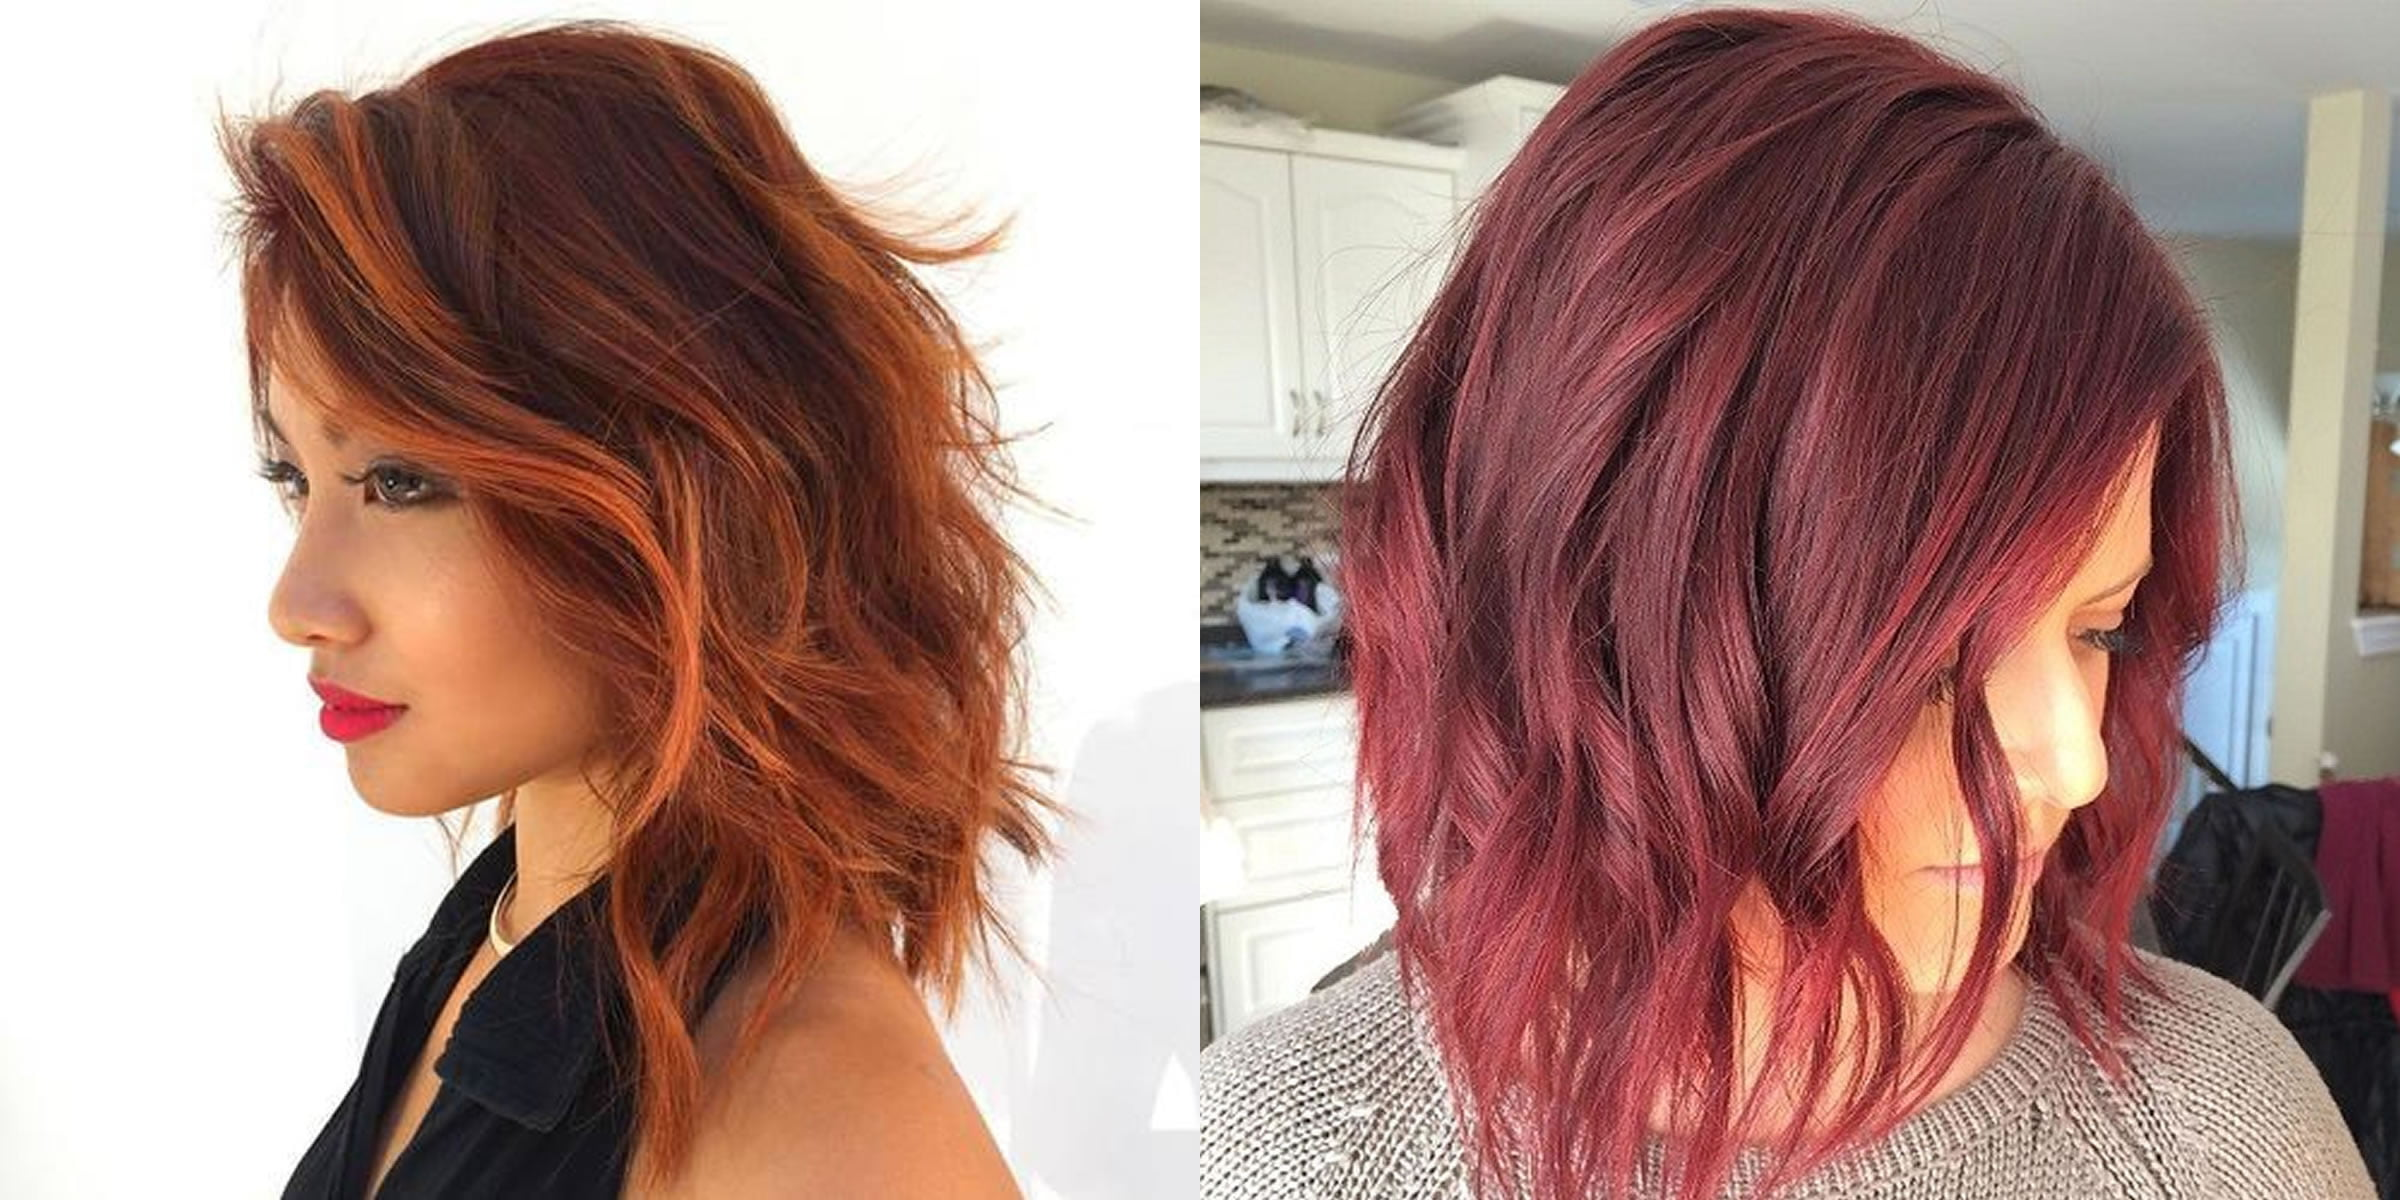 60 Best Long Bob Hairstyles And Hair Colors Balayageombre For